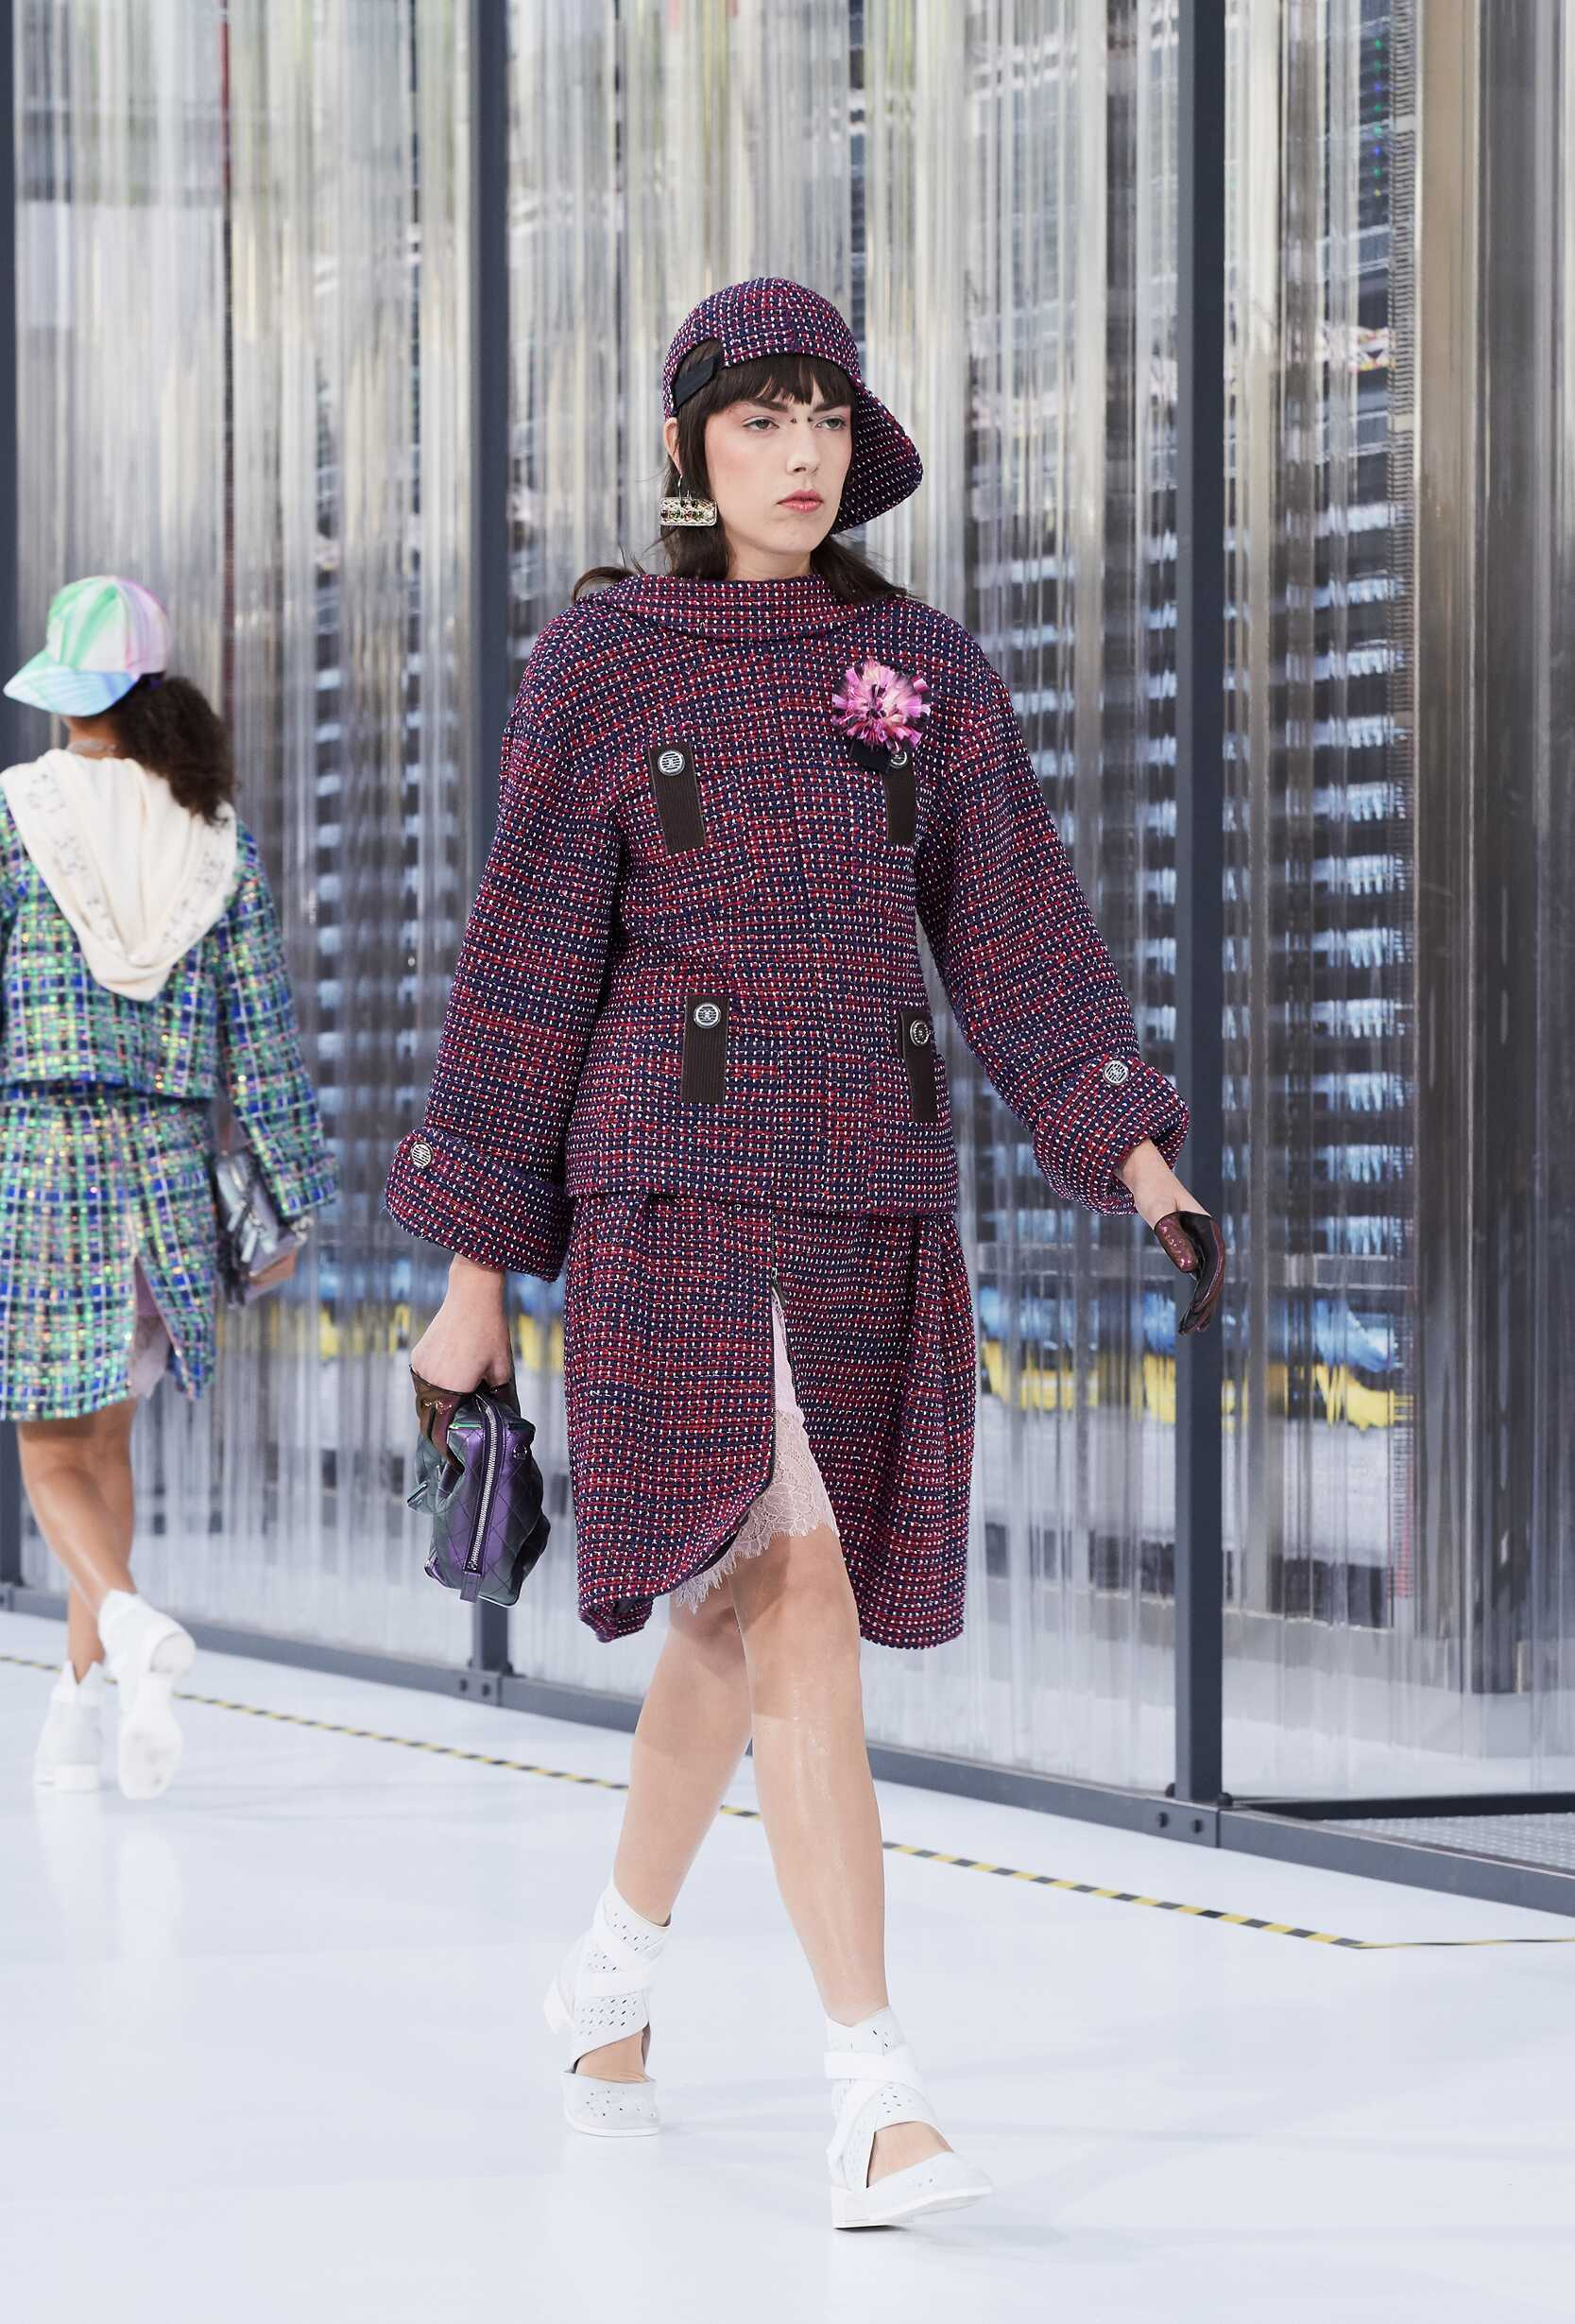 Chanel SS 2017 Womenswear